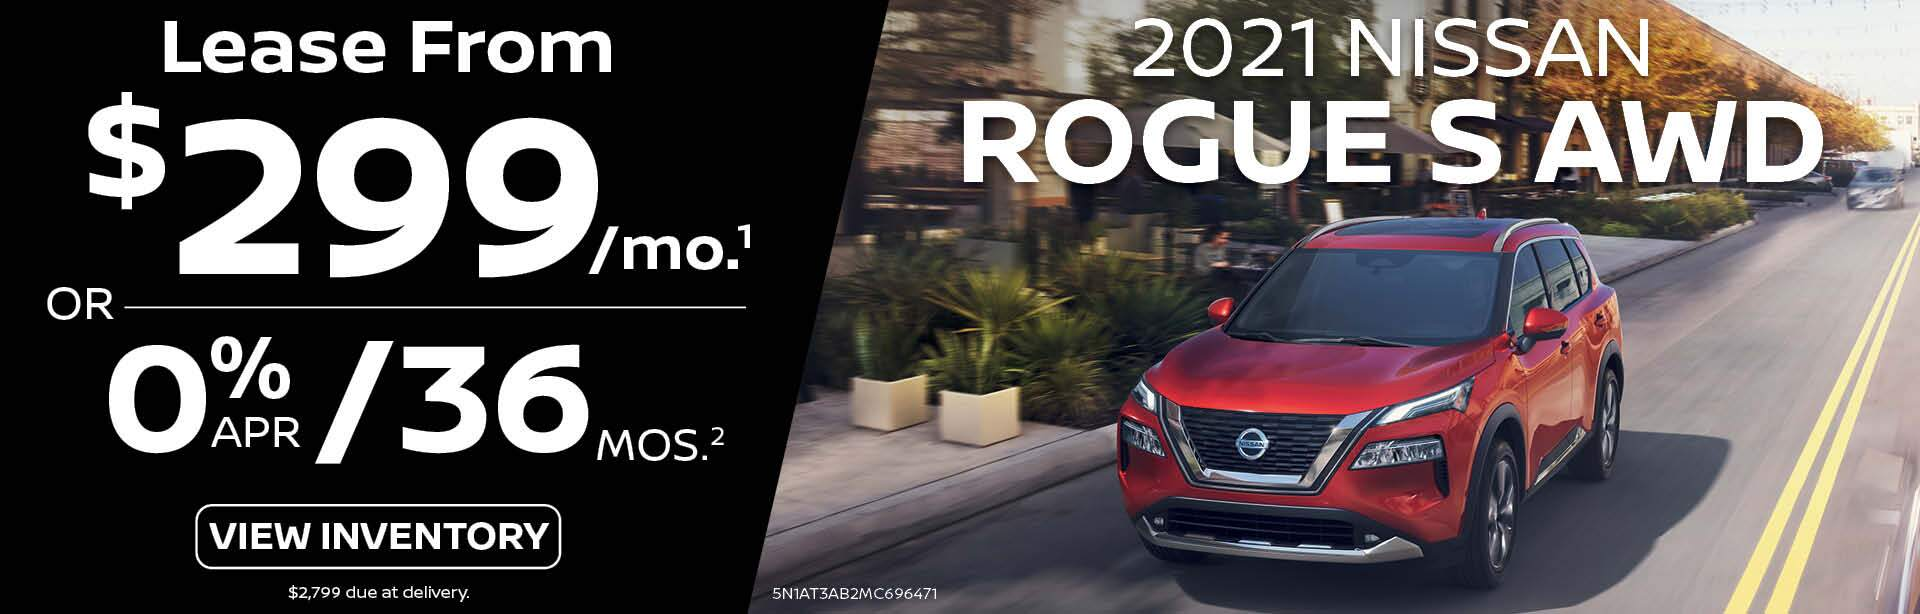 2021 Nissan Rogue S AWD